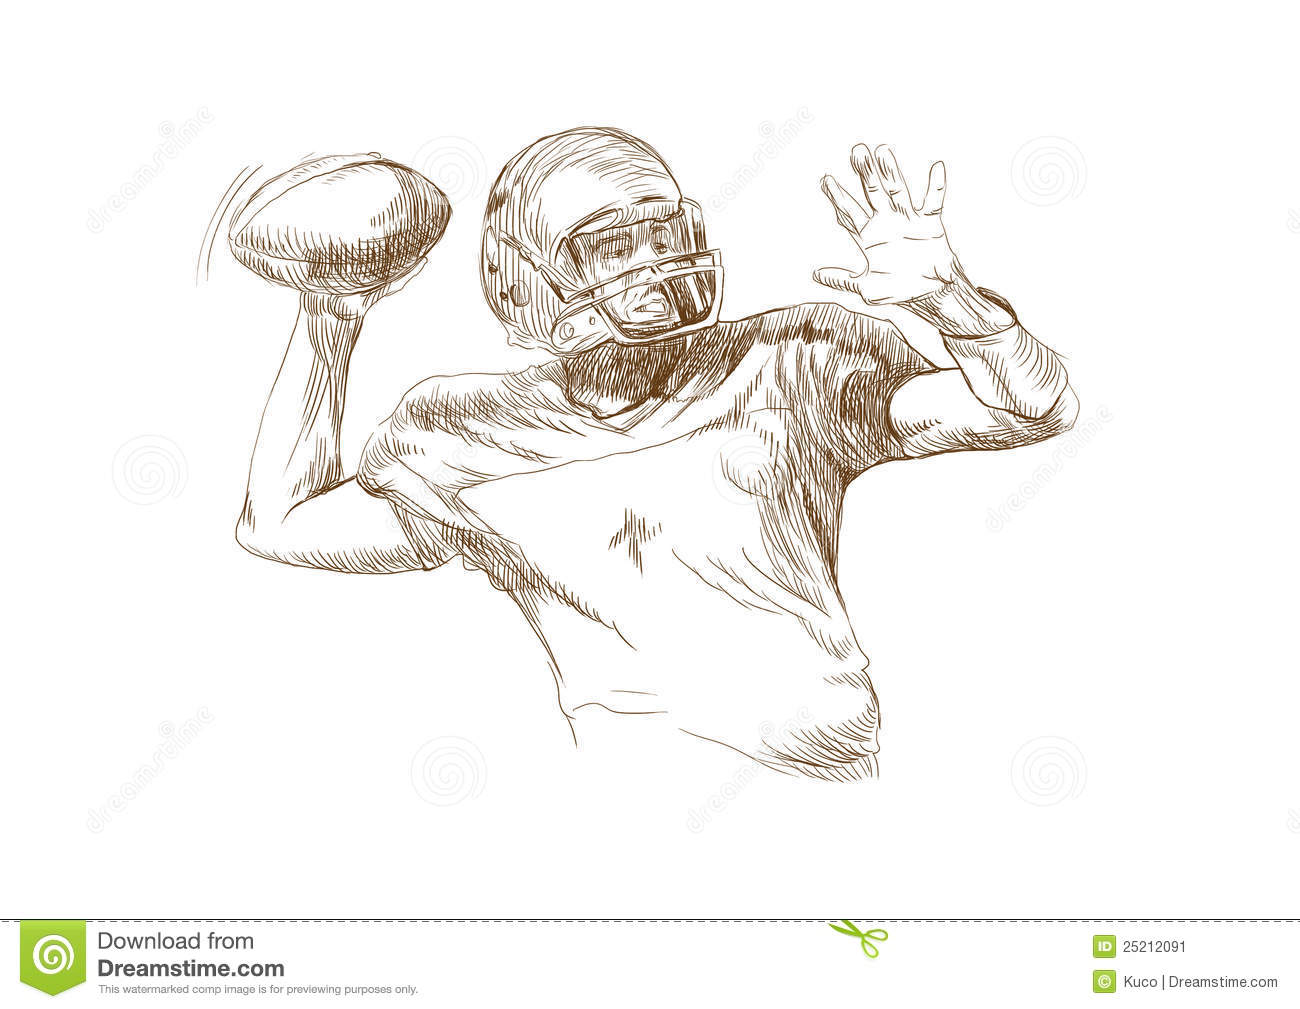 American Football Players Stock Vector. Illustration Of Drawing - 25212091